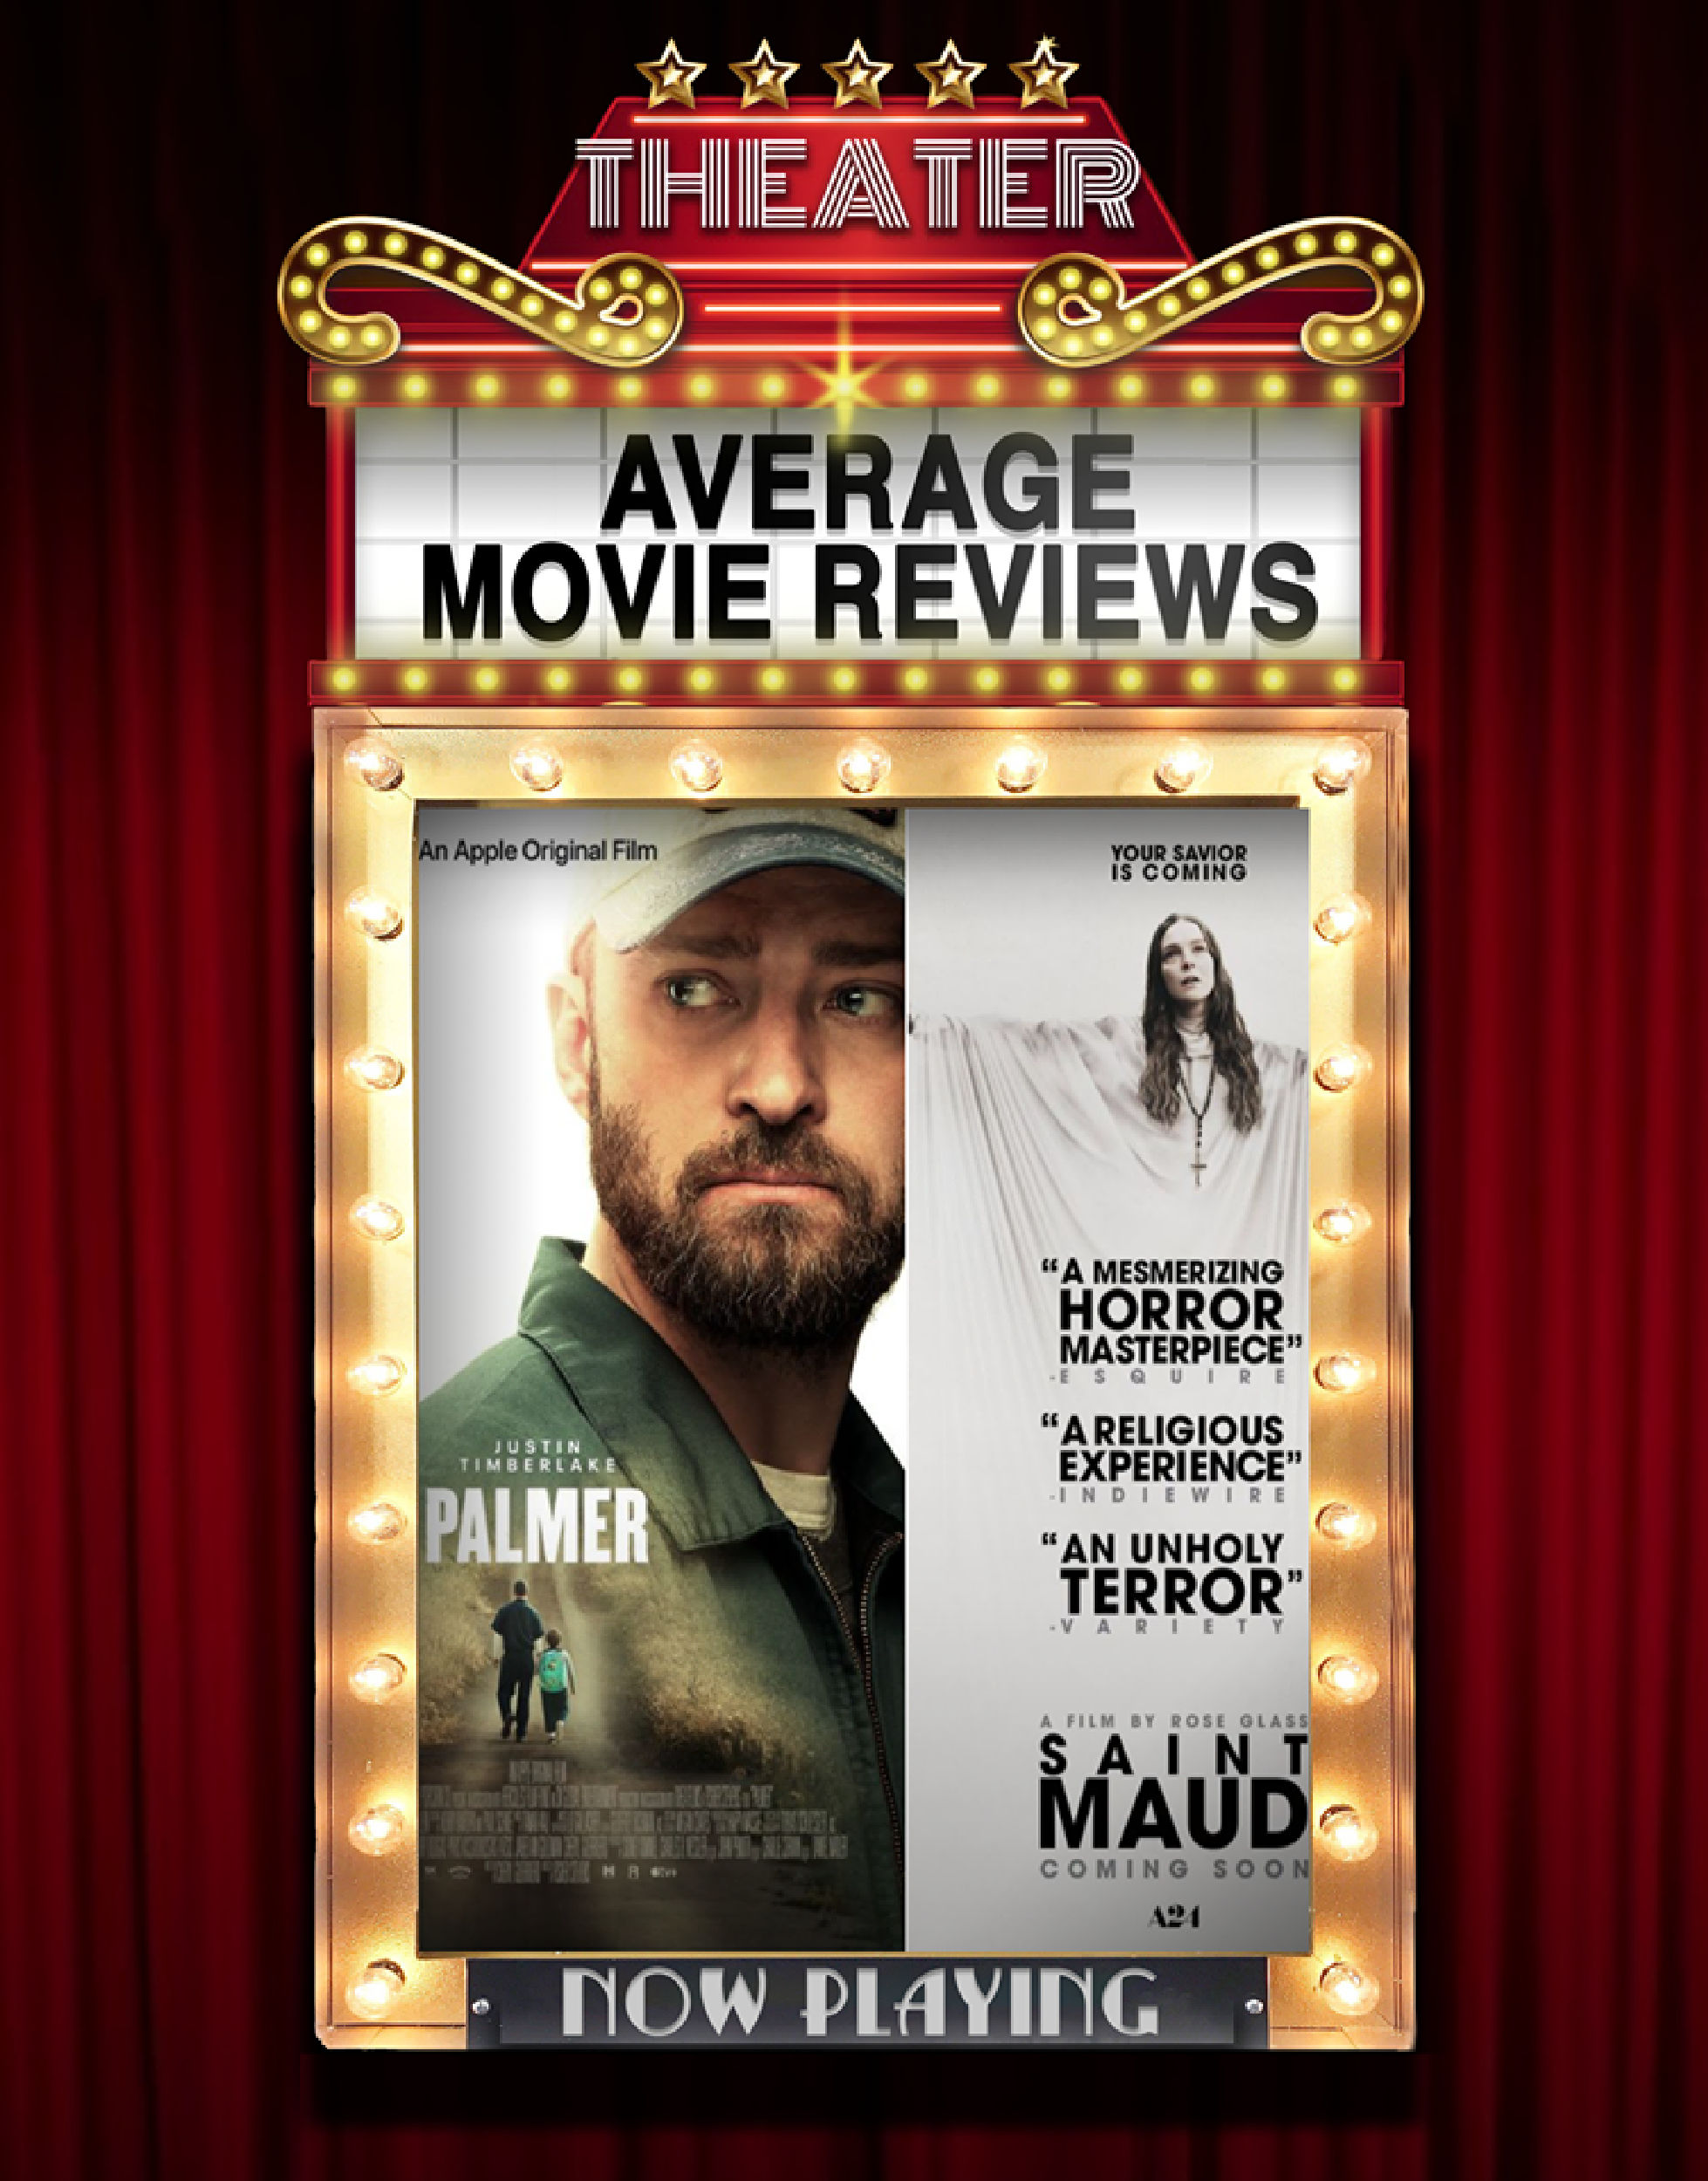 Average Movie Reviews